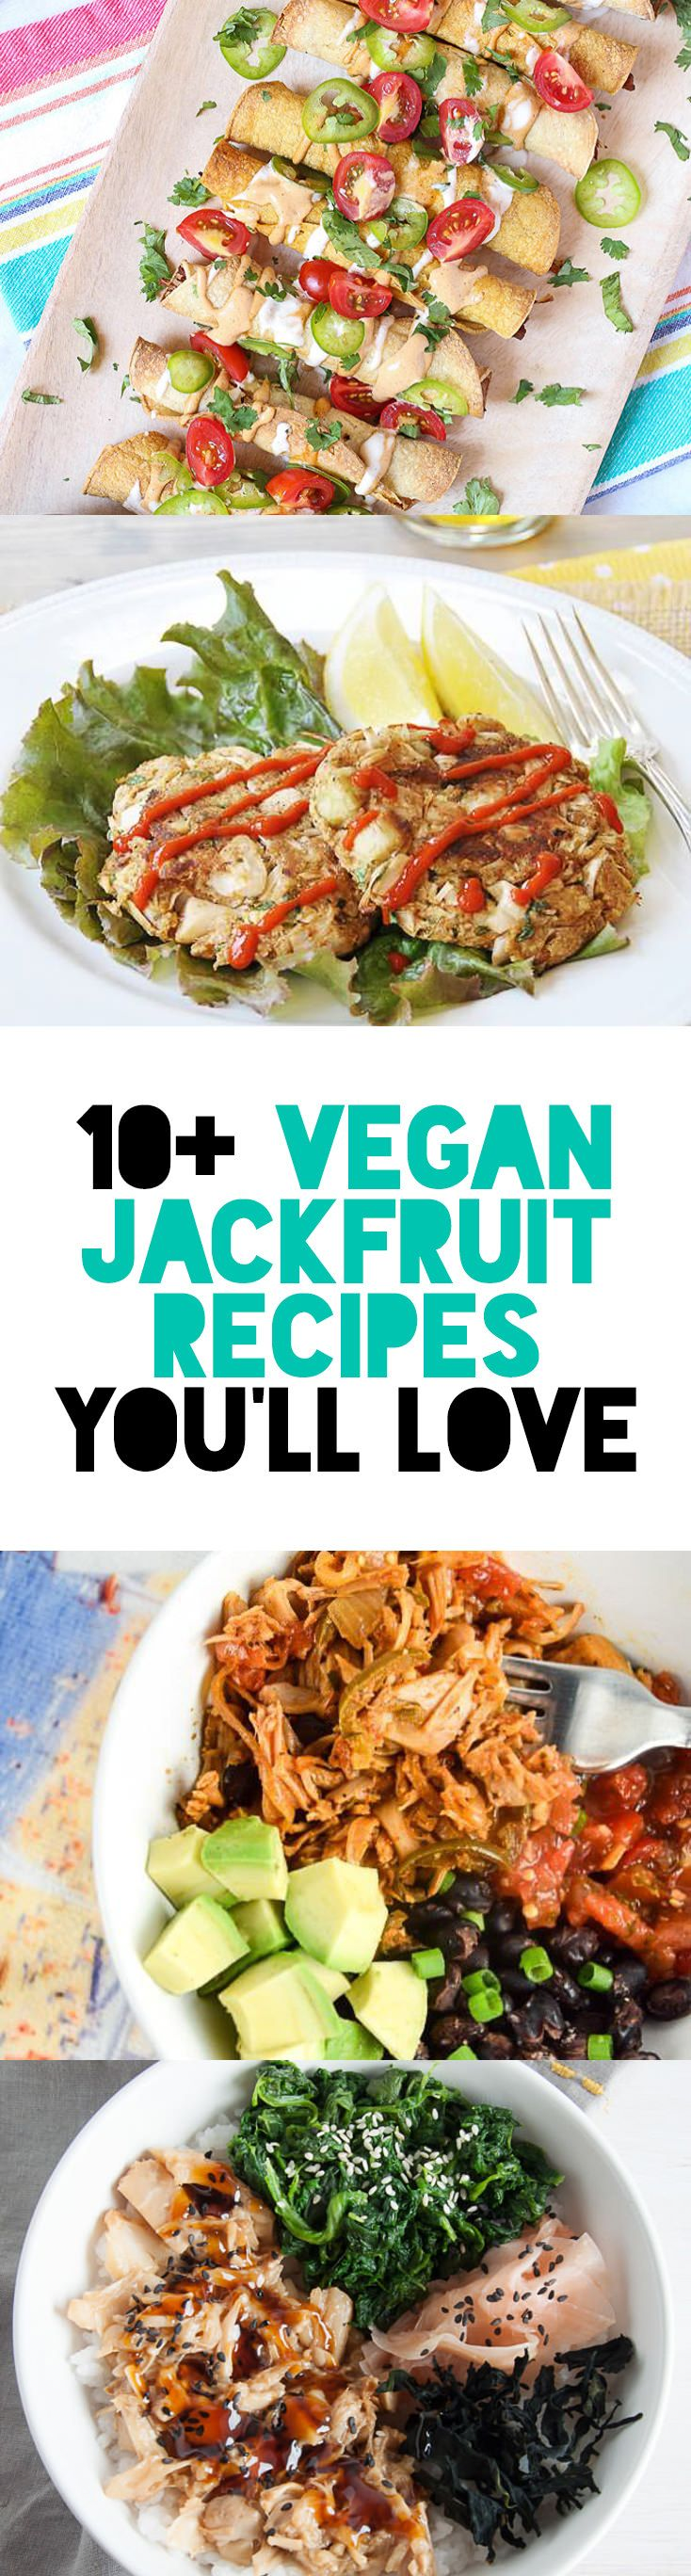 10+ Vegan Jackfruit Recipes You'll Love! via @elephantasticv